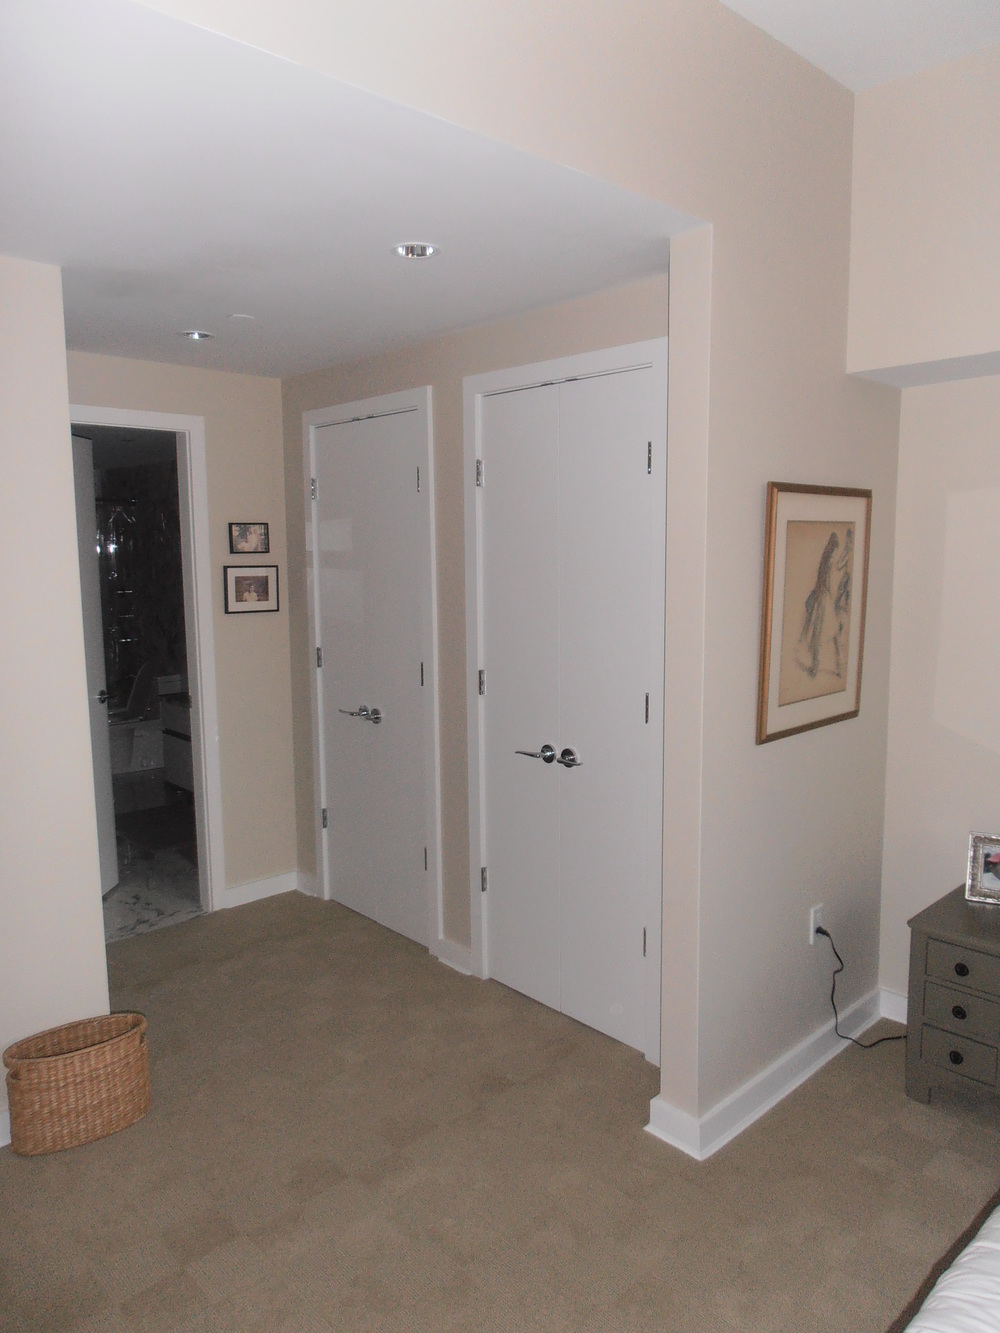 1 Bedroom Closet After South End Garrison.JPG